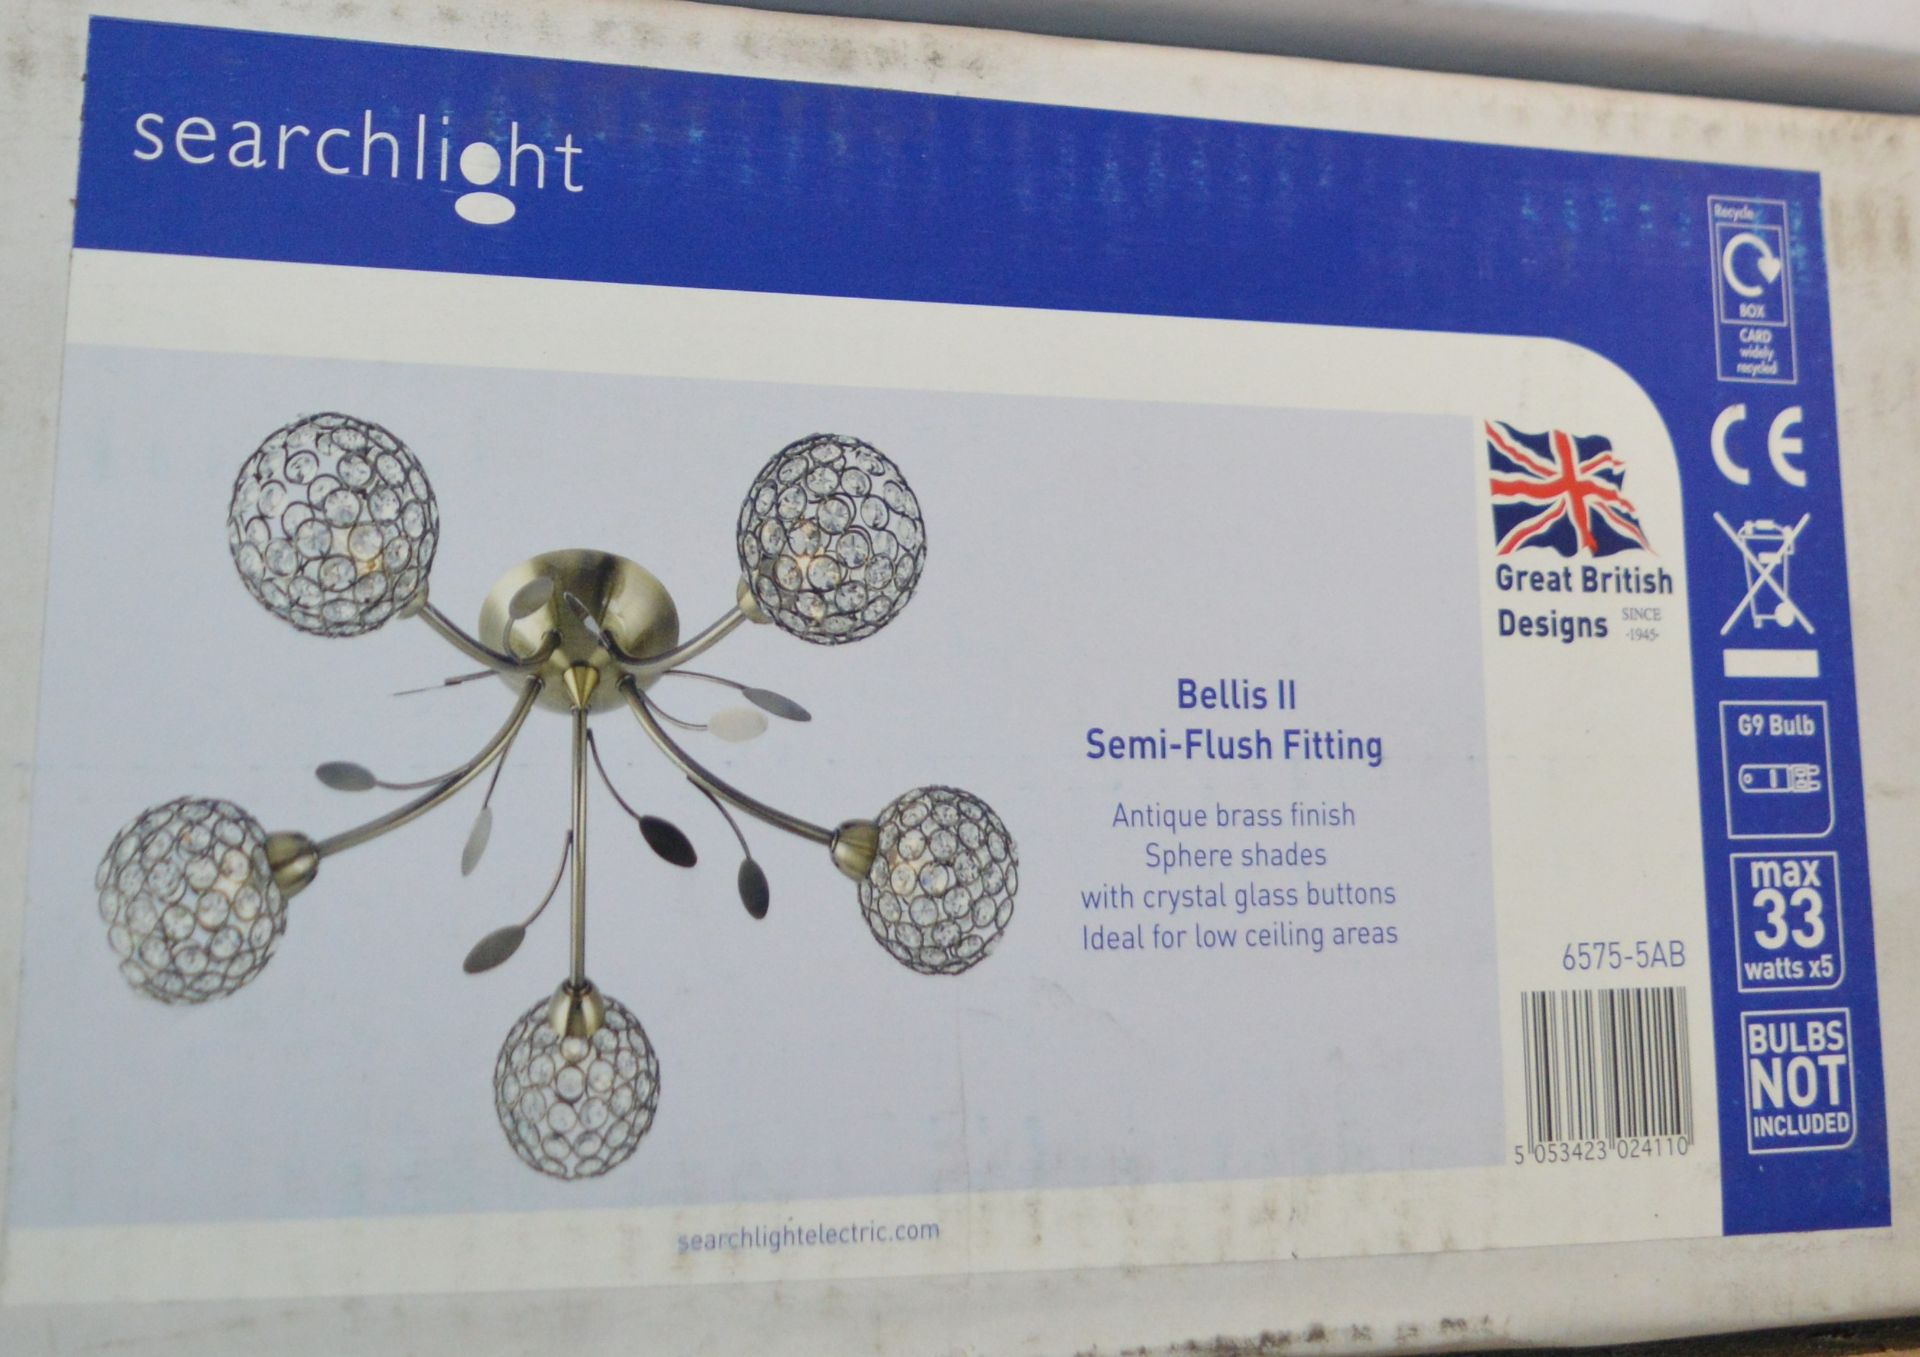 Lot 9108 - 1 x Searchlight Bellis II Semi Flush Ceiling Light Fittings in Antique Brass With Sphere Shades -